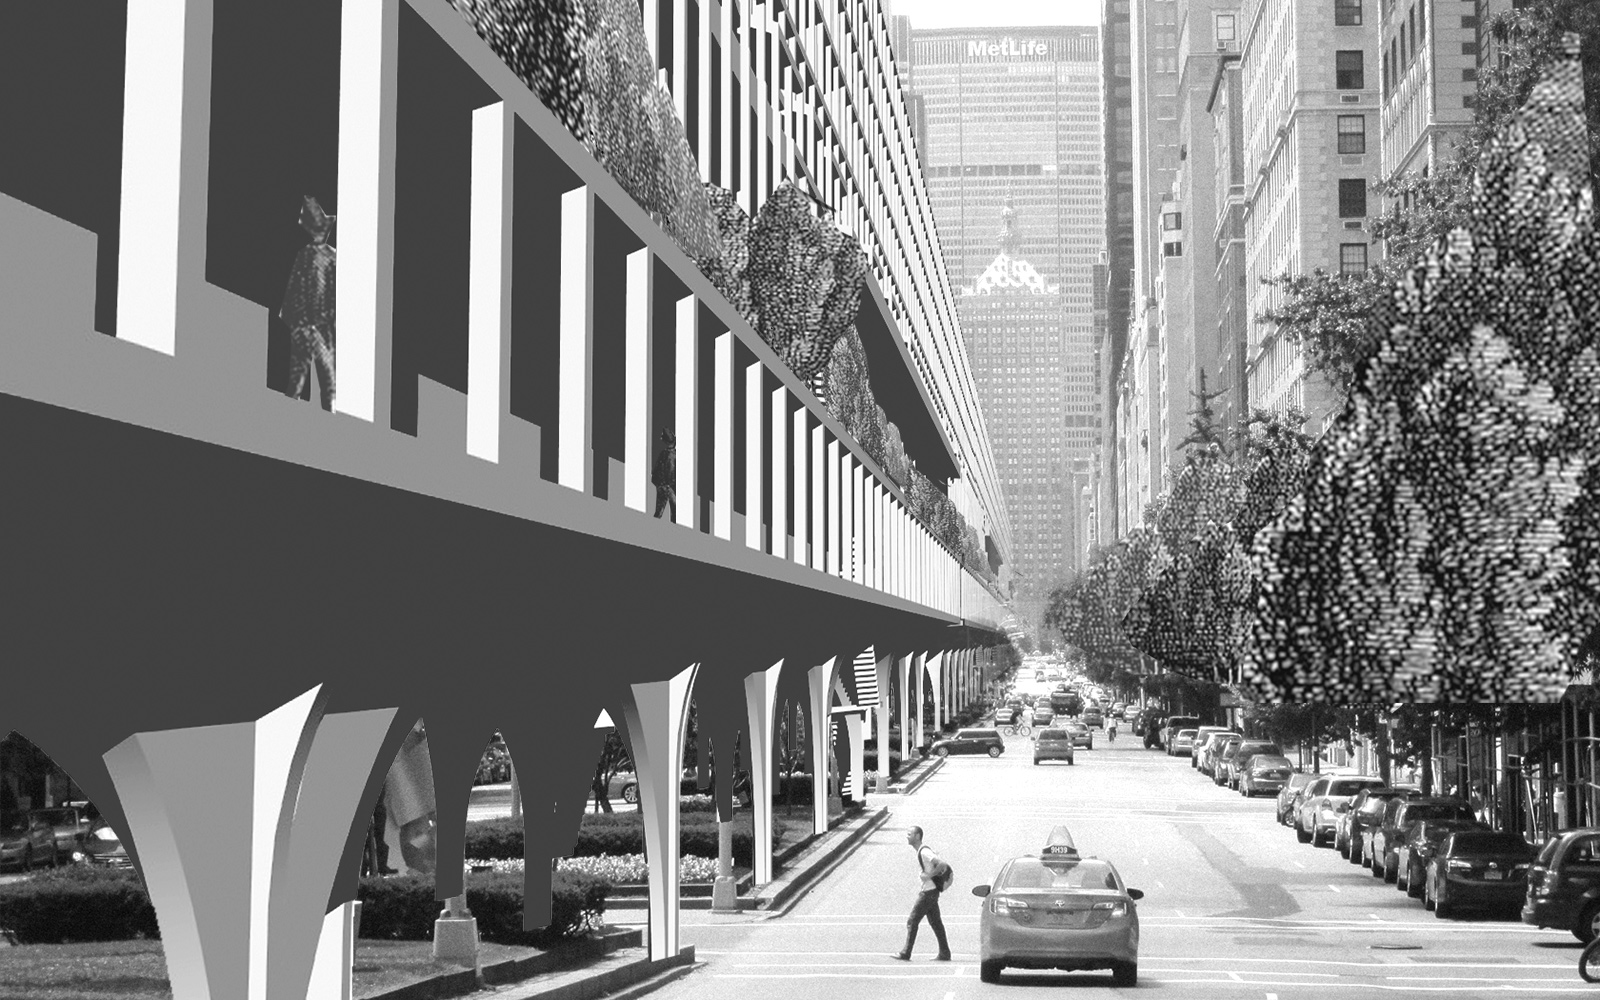 Perspective of Park Avenue at Midtown with ININ infill housing massing located within the center median